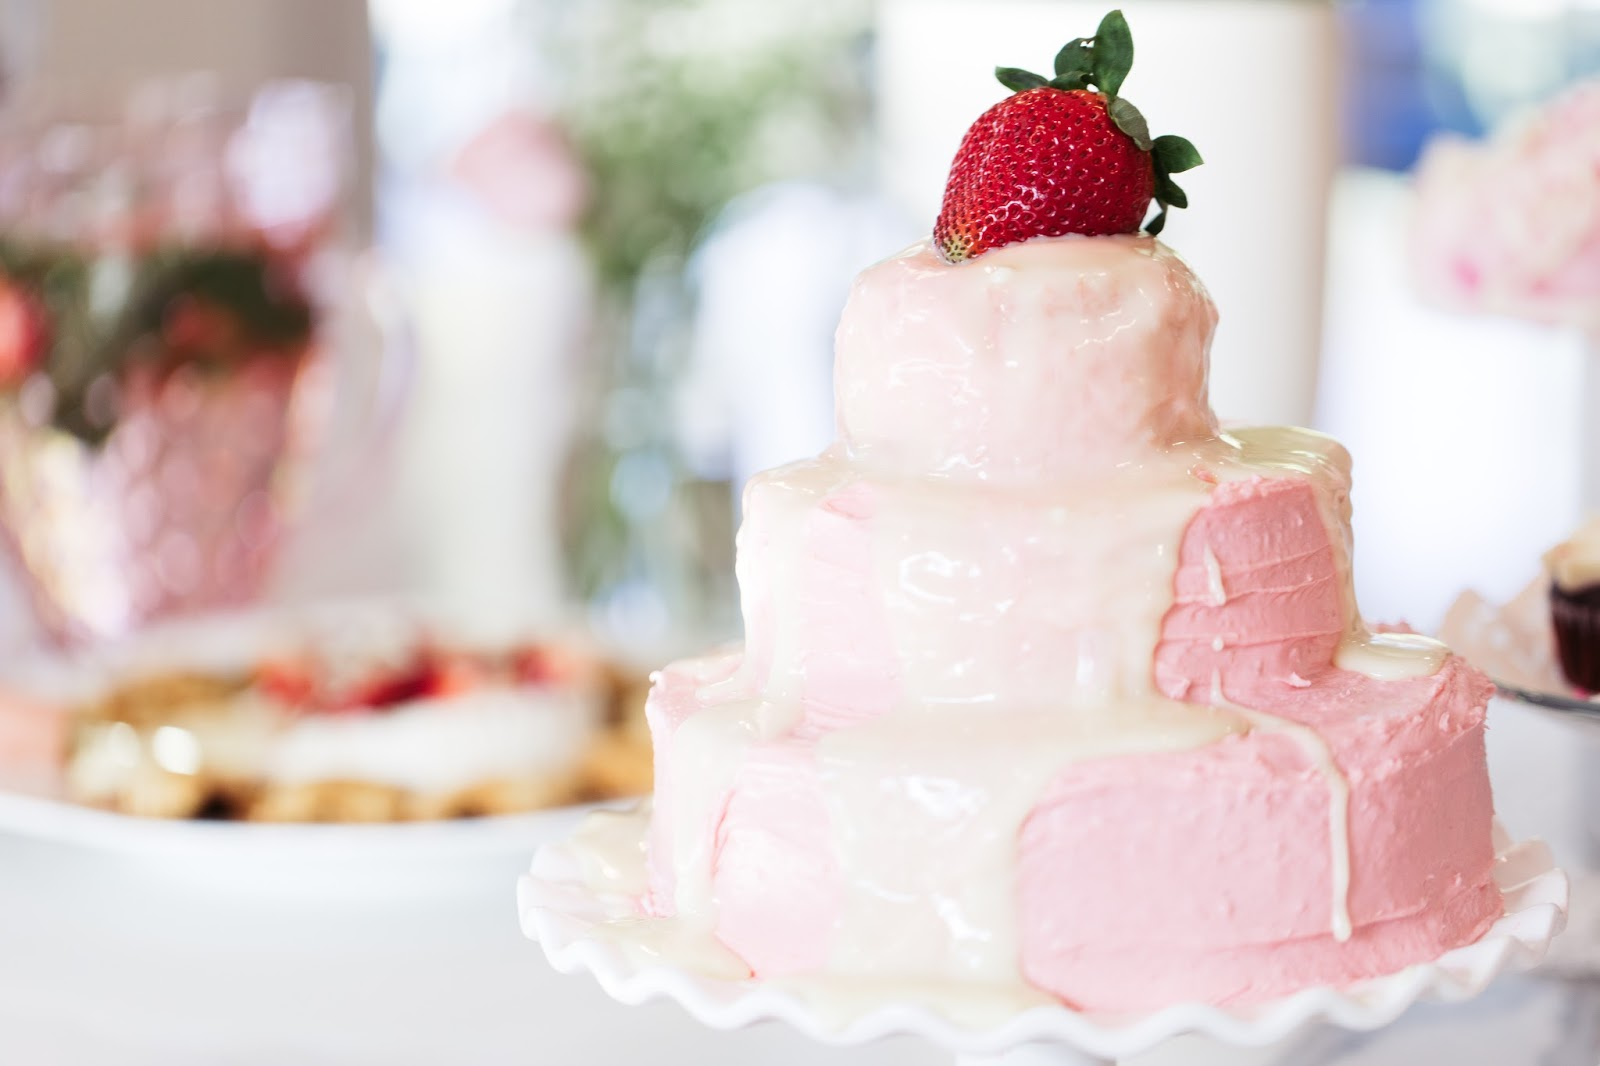 Decorate your Valentine's Day buffet table with a darling, pink frosted cake